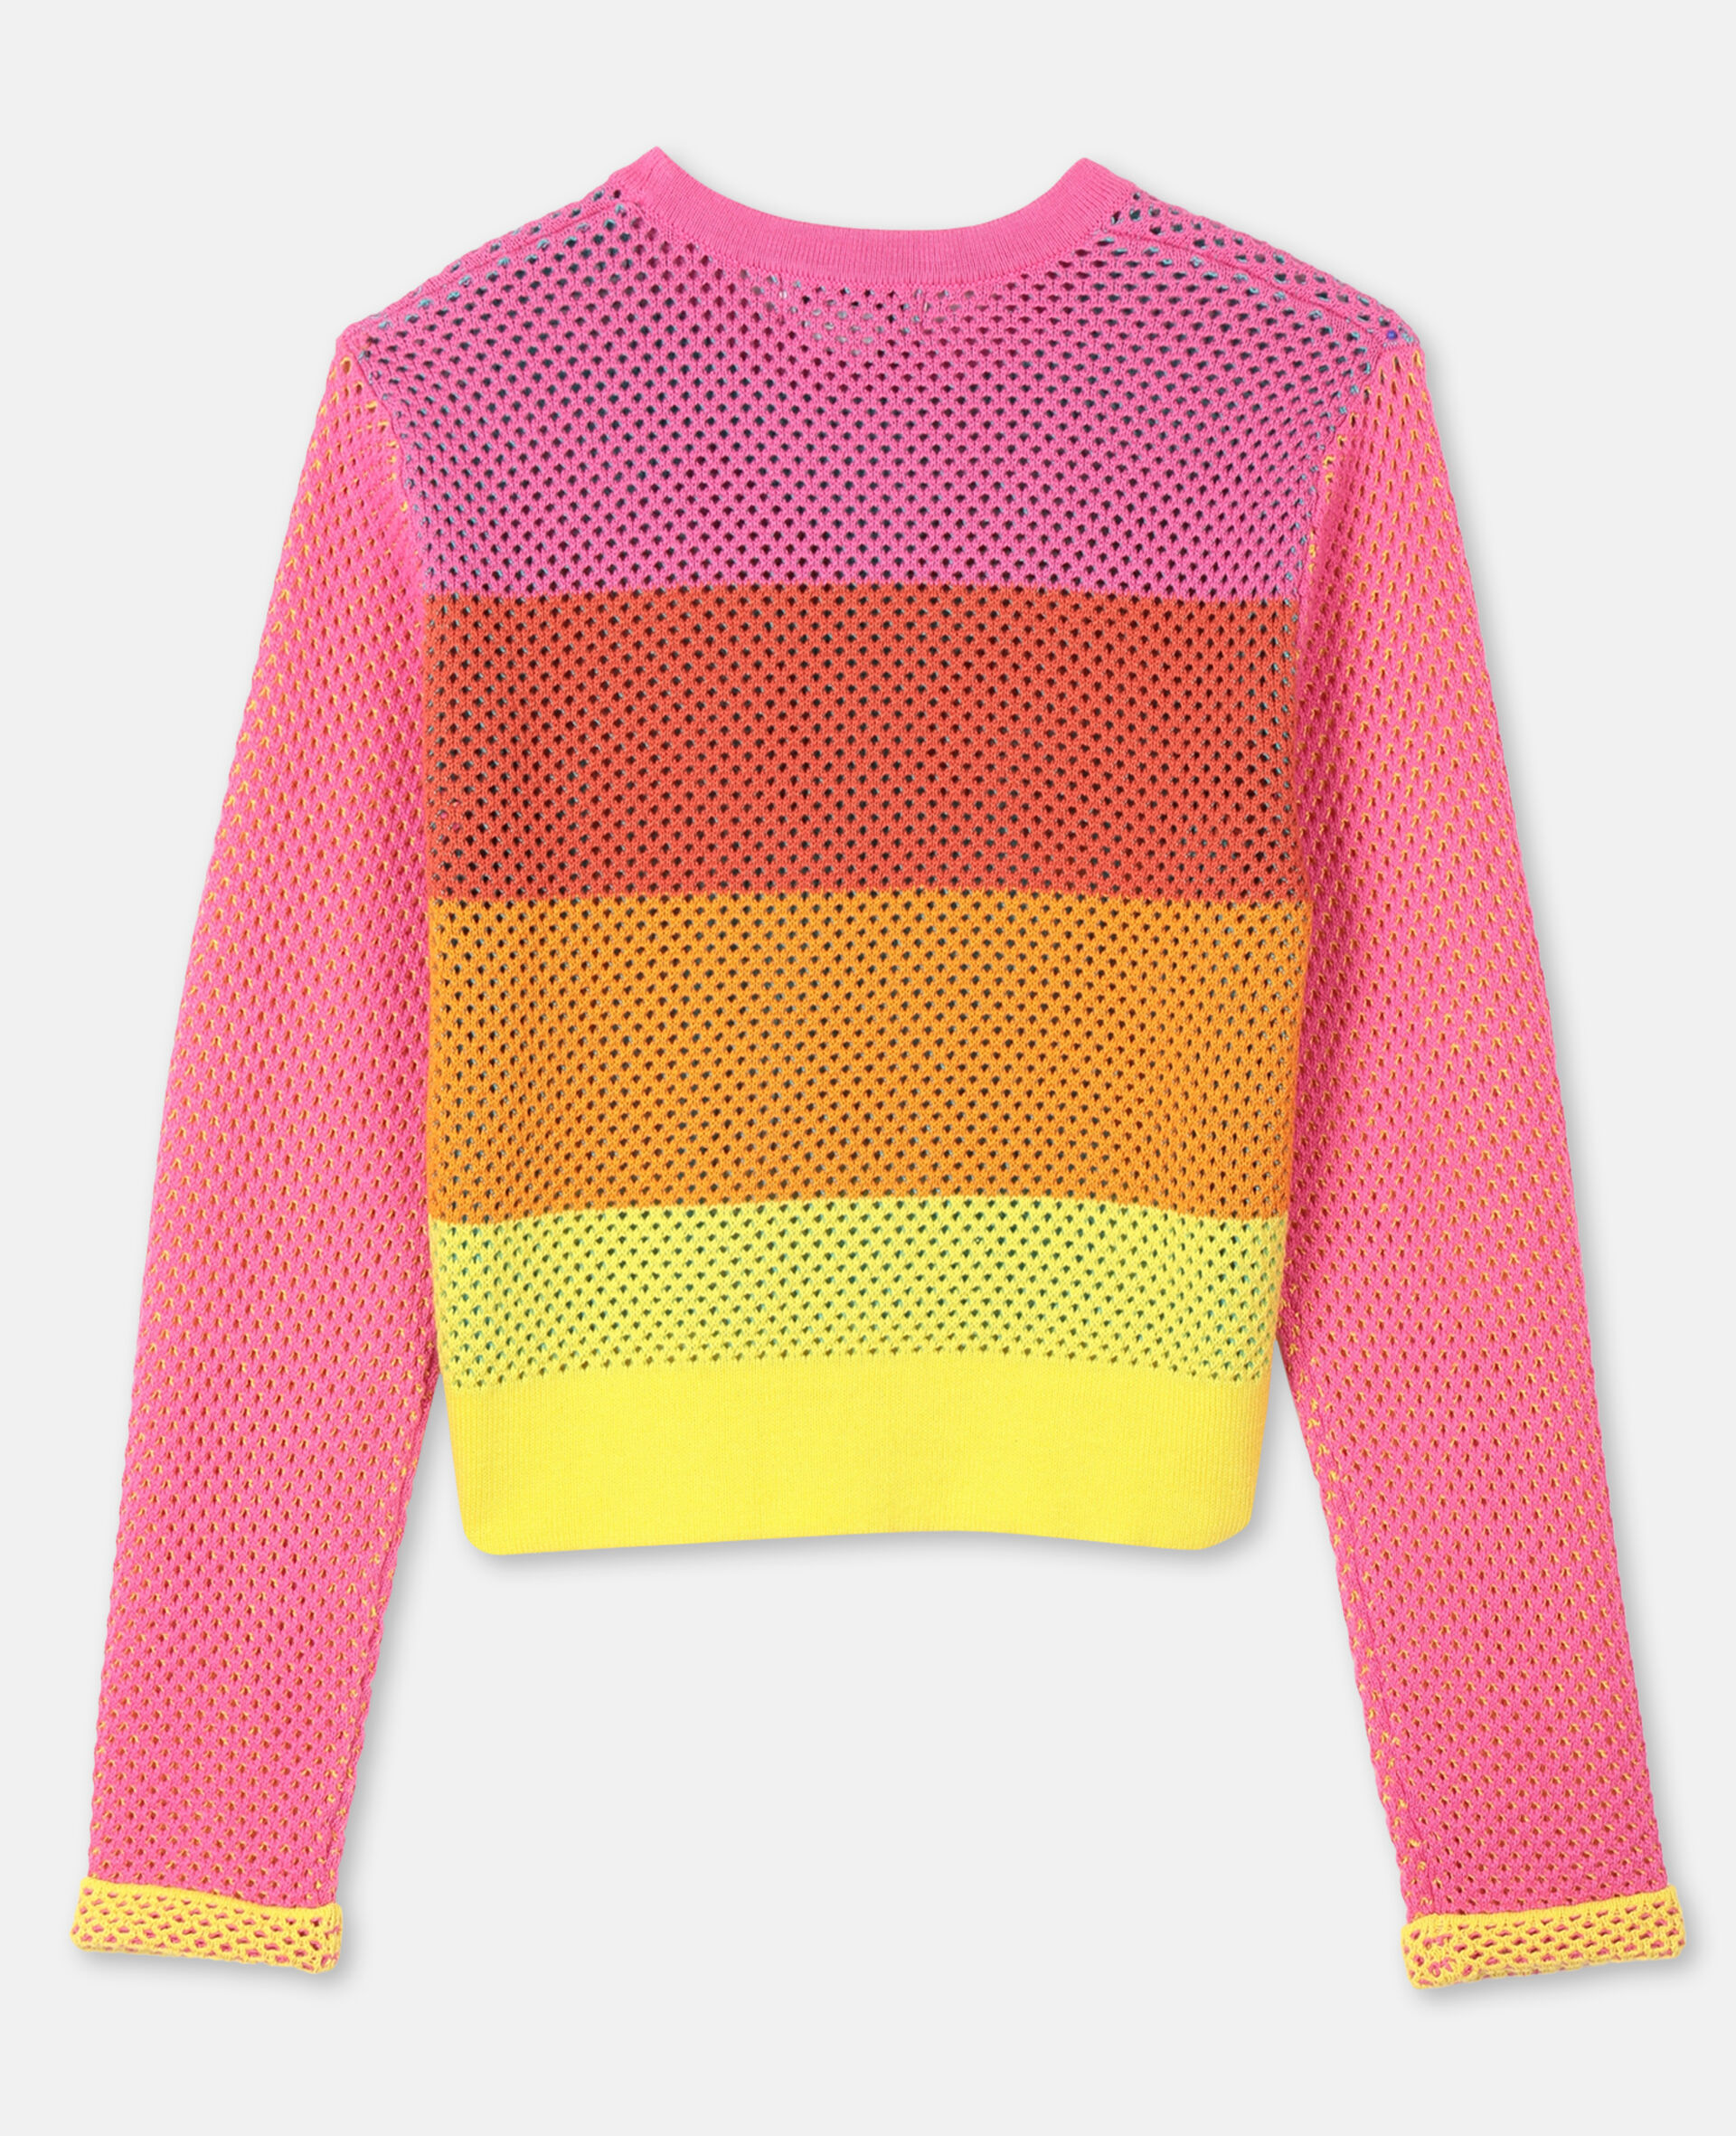 Intarsia Mesh Knit Cotton Sweater -Multicoloured-large image number 3